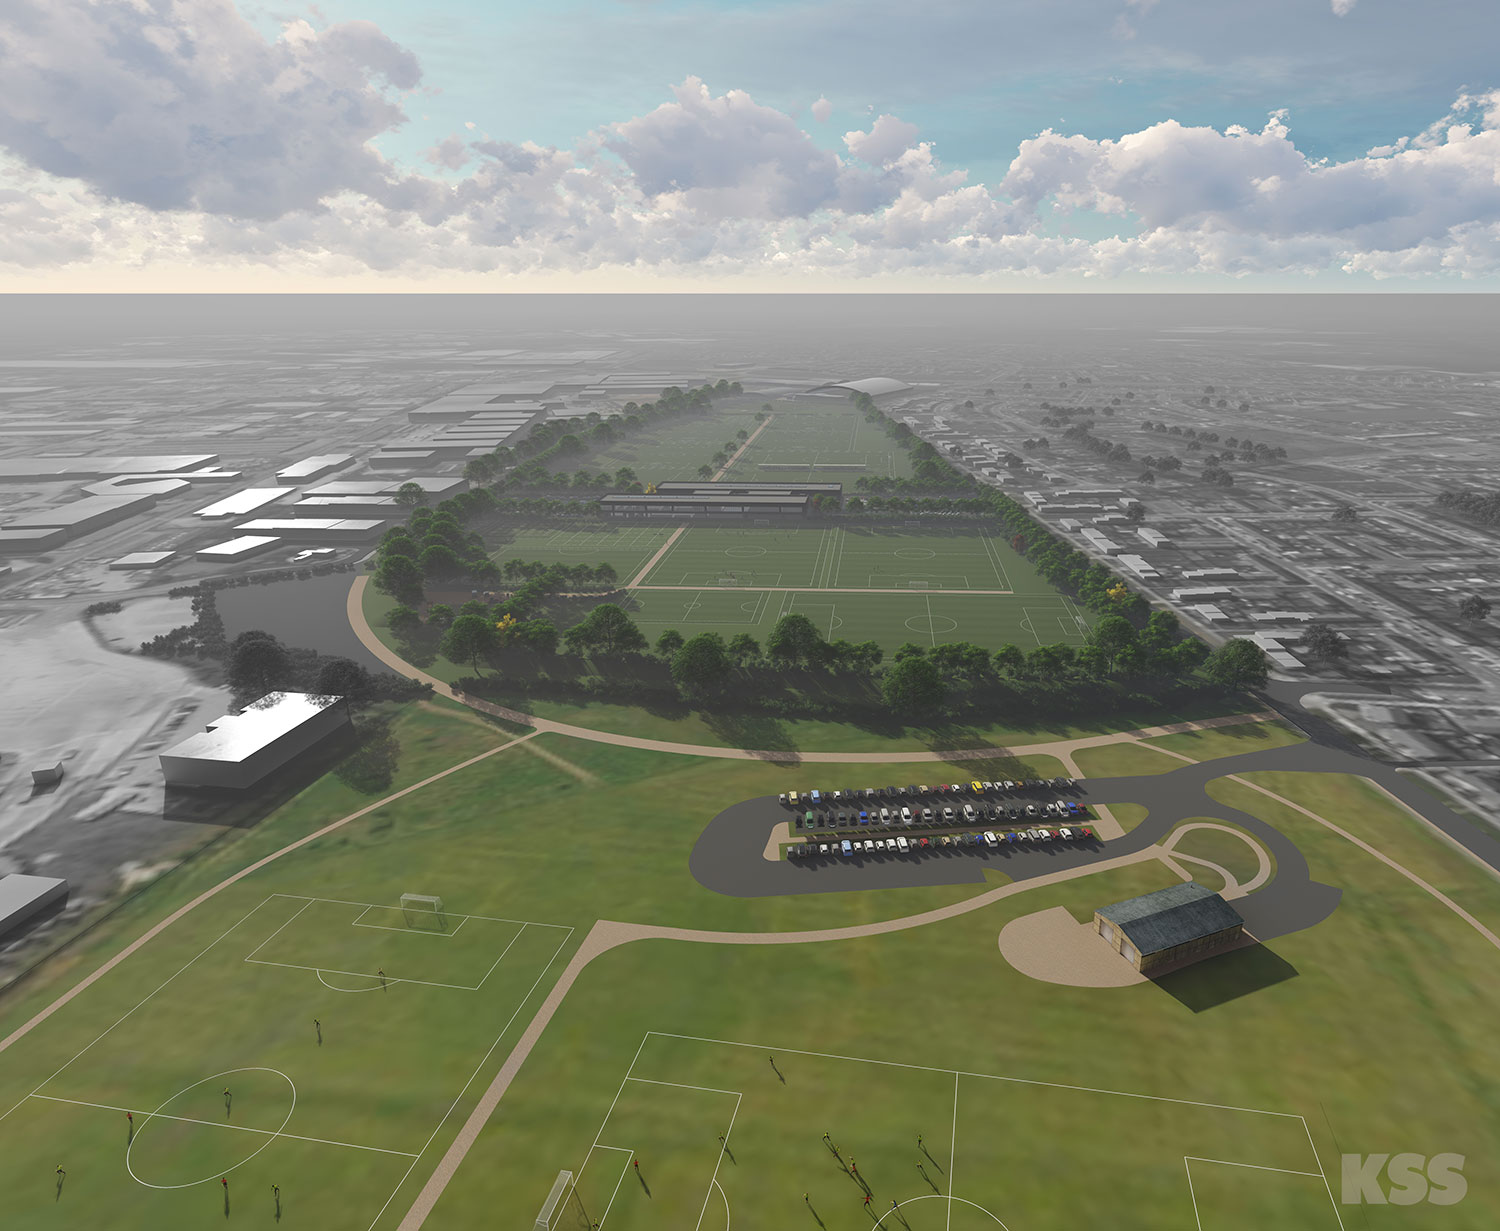 Liverpool Fc Confirm Plans For Melwood End And Academy Site Expansion